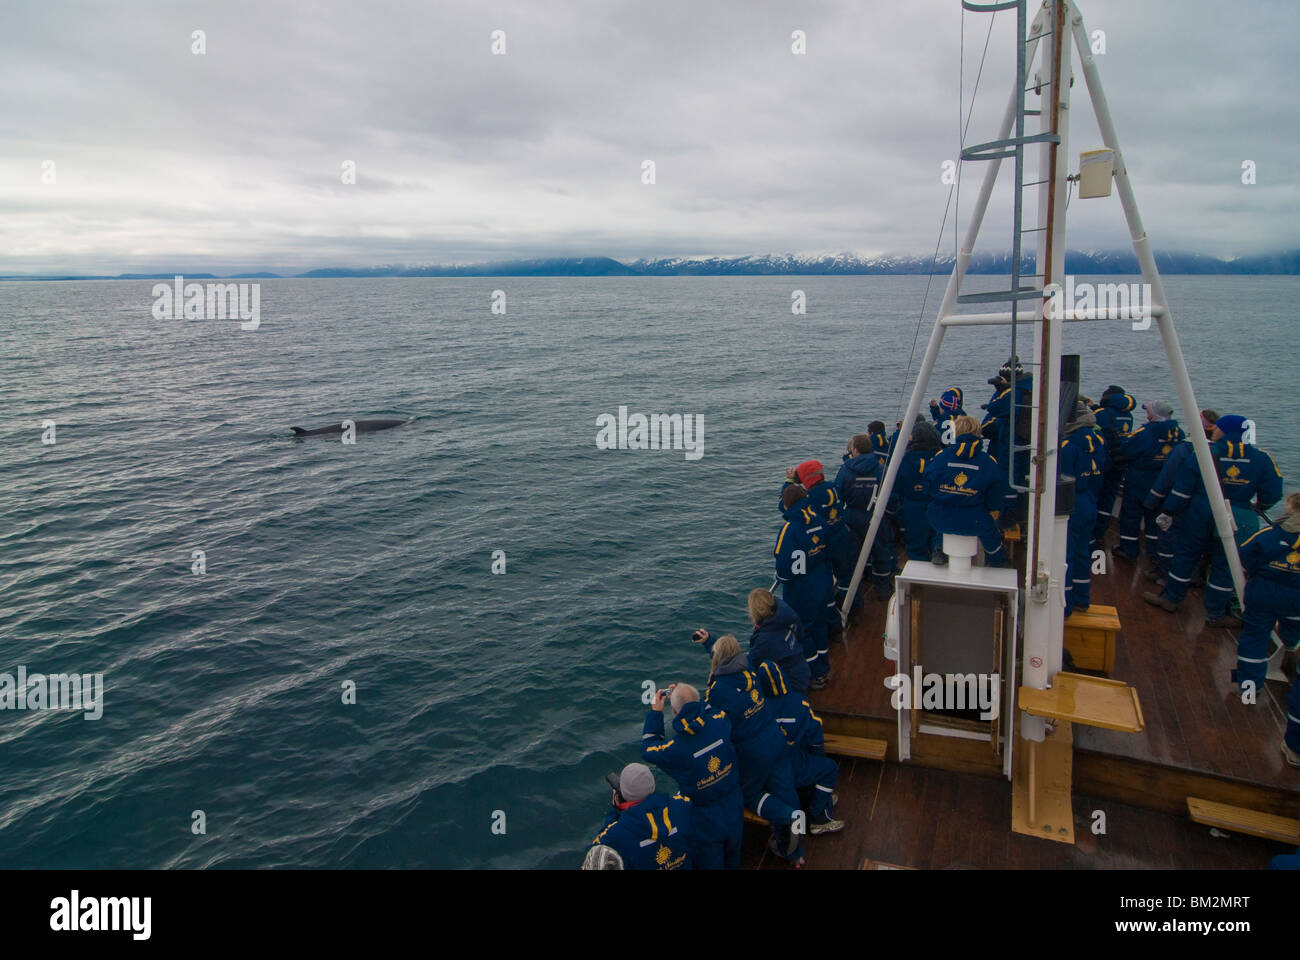 Trawler with tourists watching a whale, Husavik, Iceland, Polar Regions - Stock Image